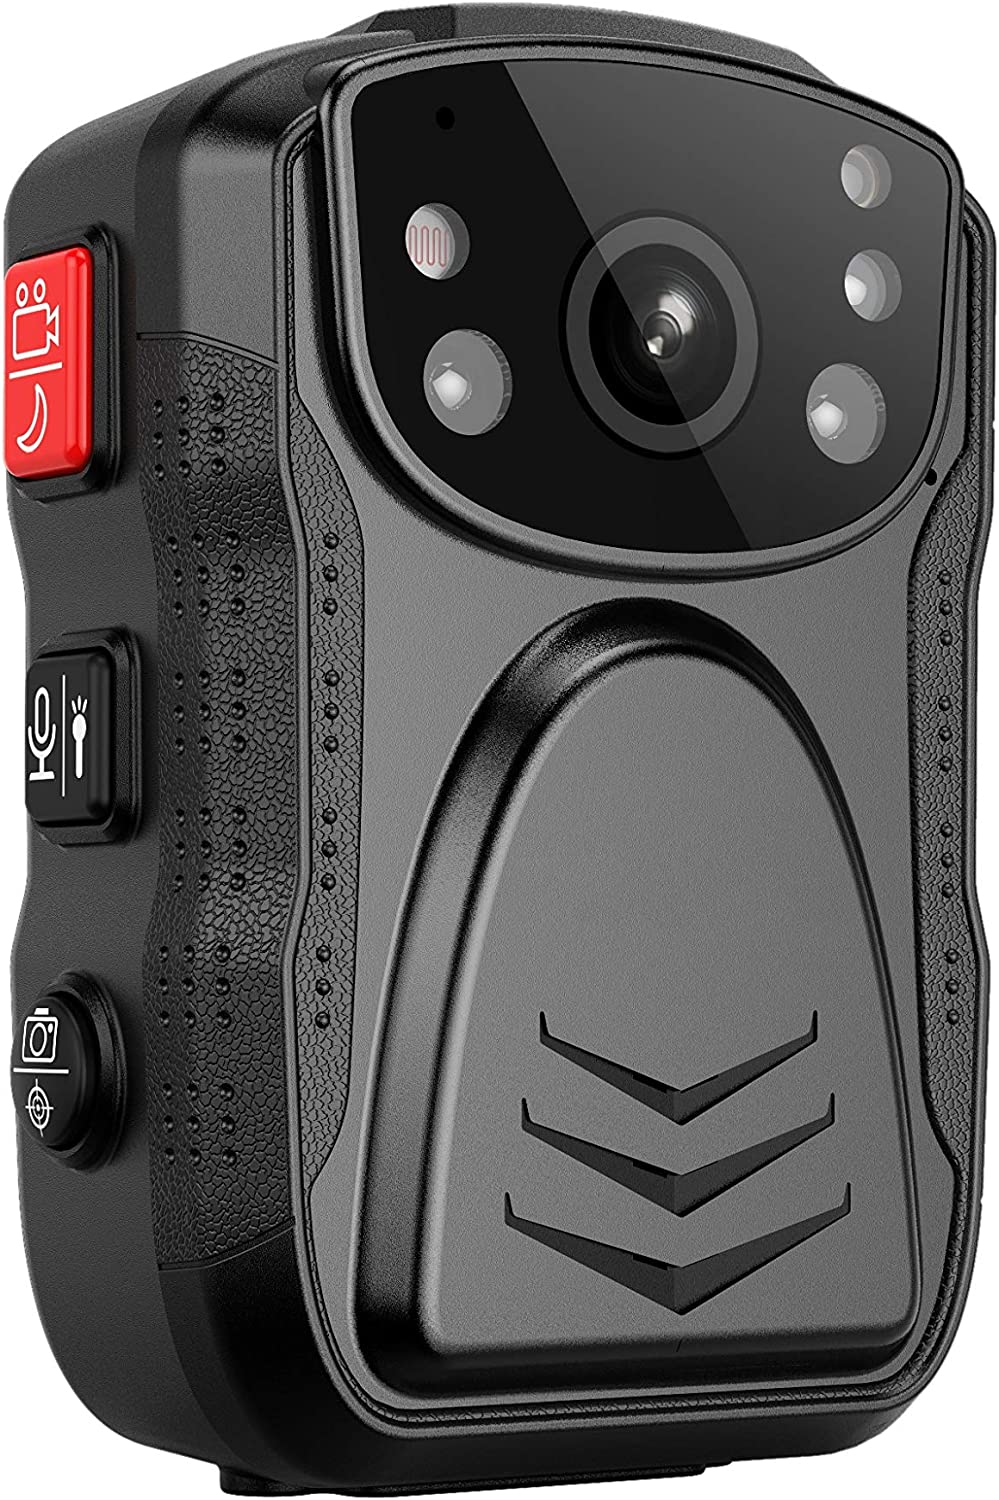 PatrolMaster 1296P UHD Body Camera with Audio (Build-in 128GB), 2 Inch Display, Night Vision, Waterproof, Shockproof, Body Worn Camera with Compact Design, Police Camera for Law Enforcement